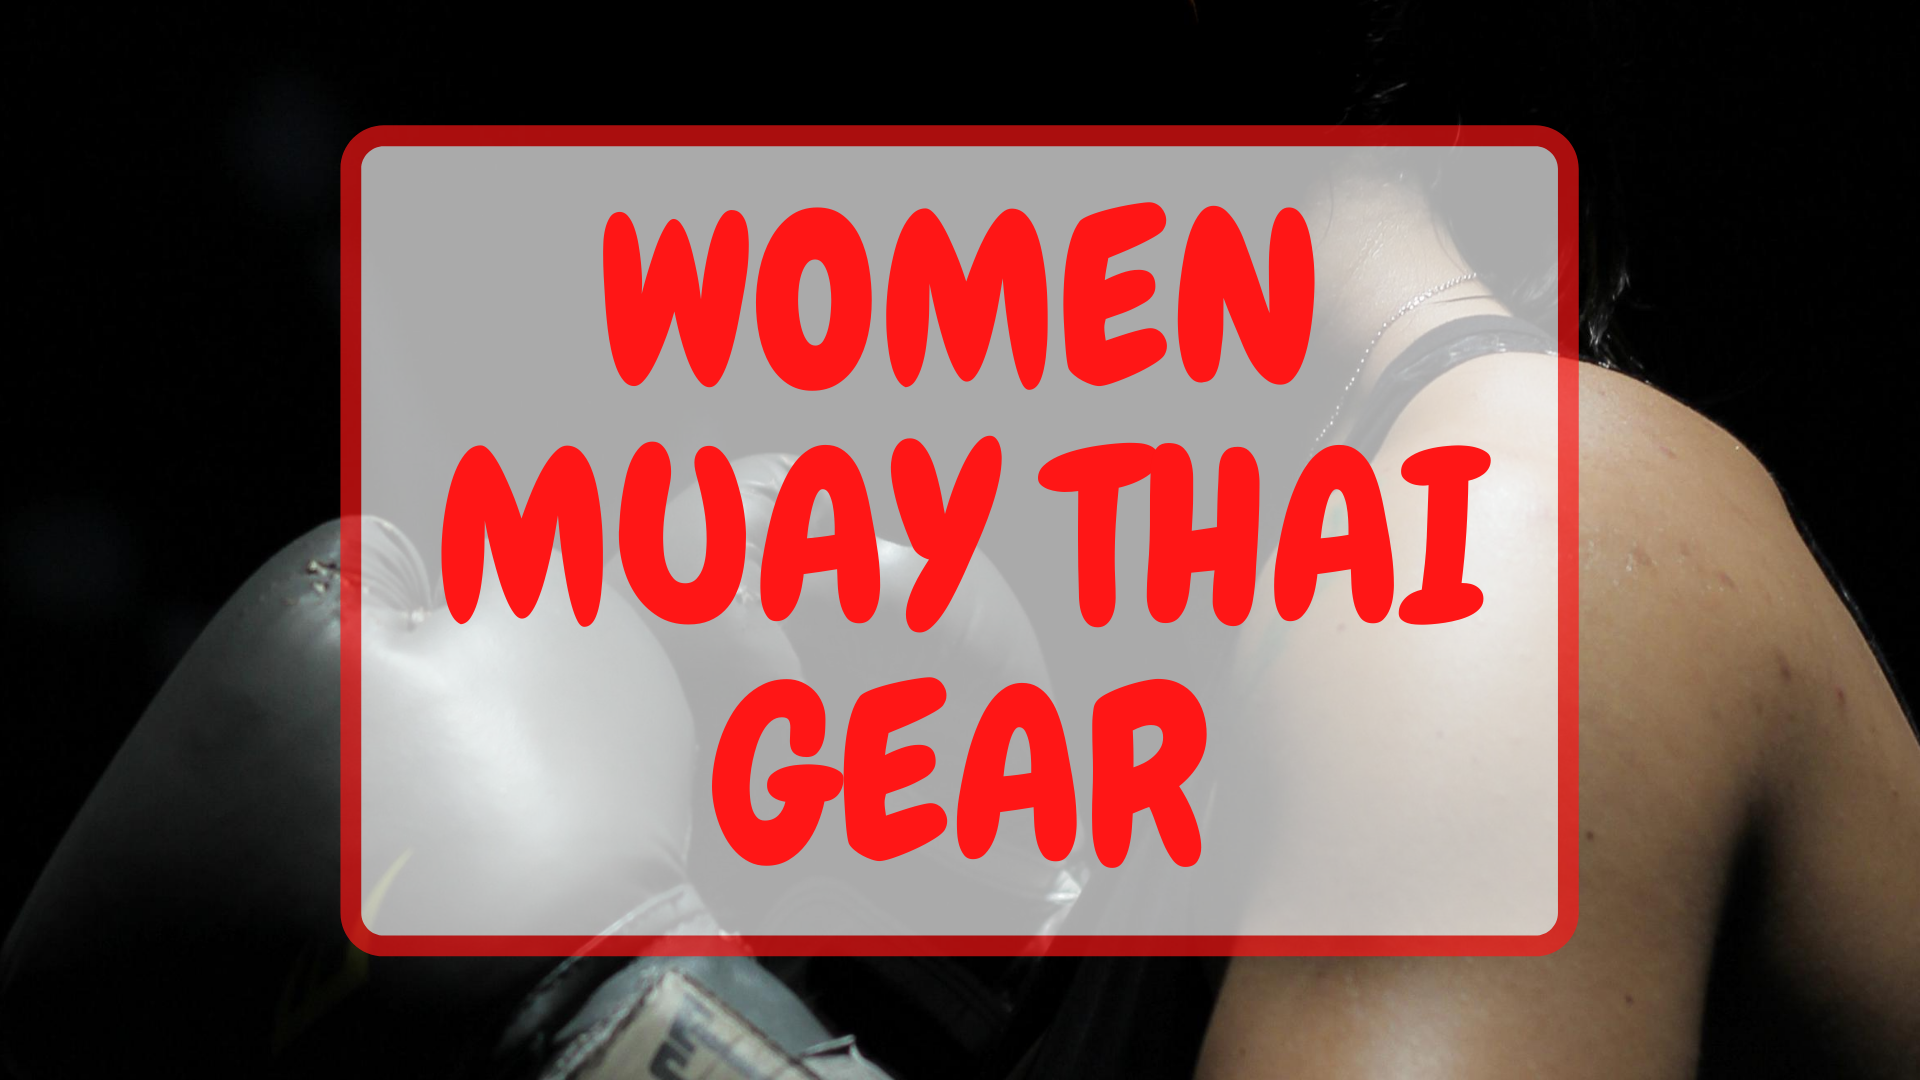 women muay thai gear